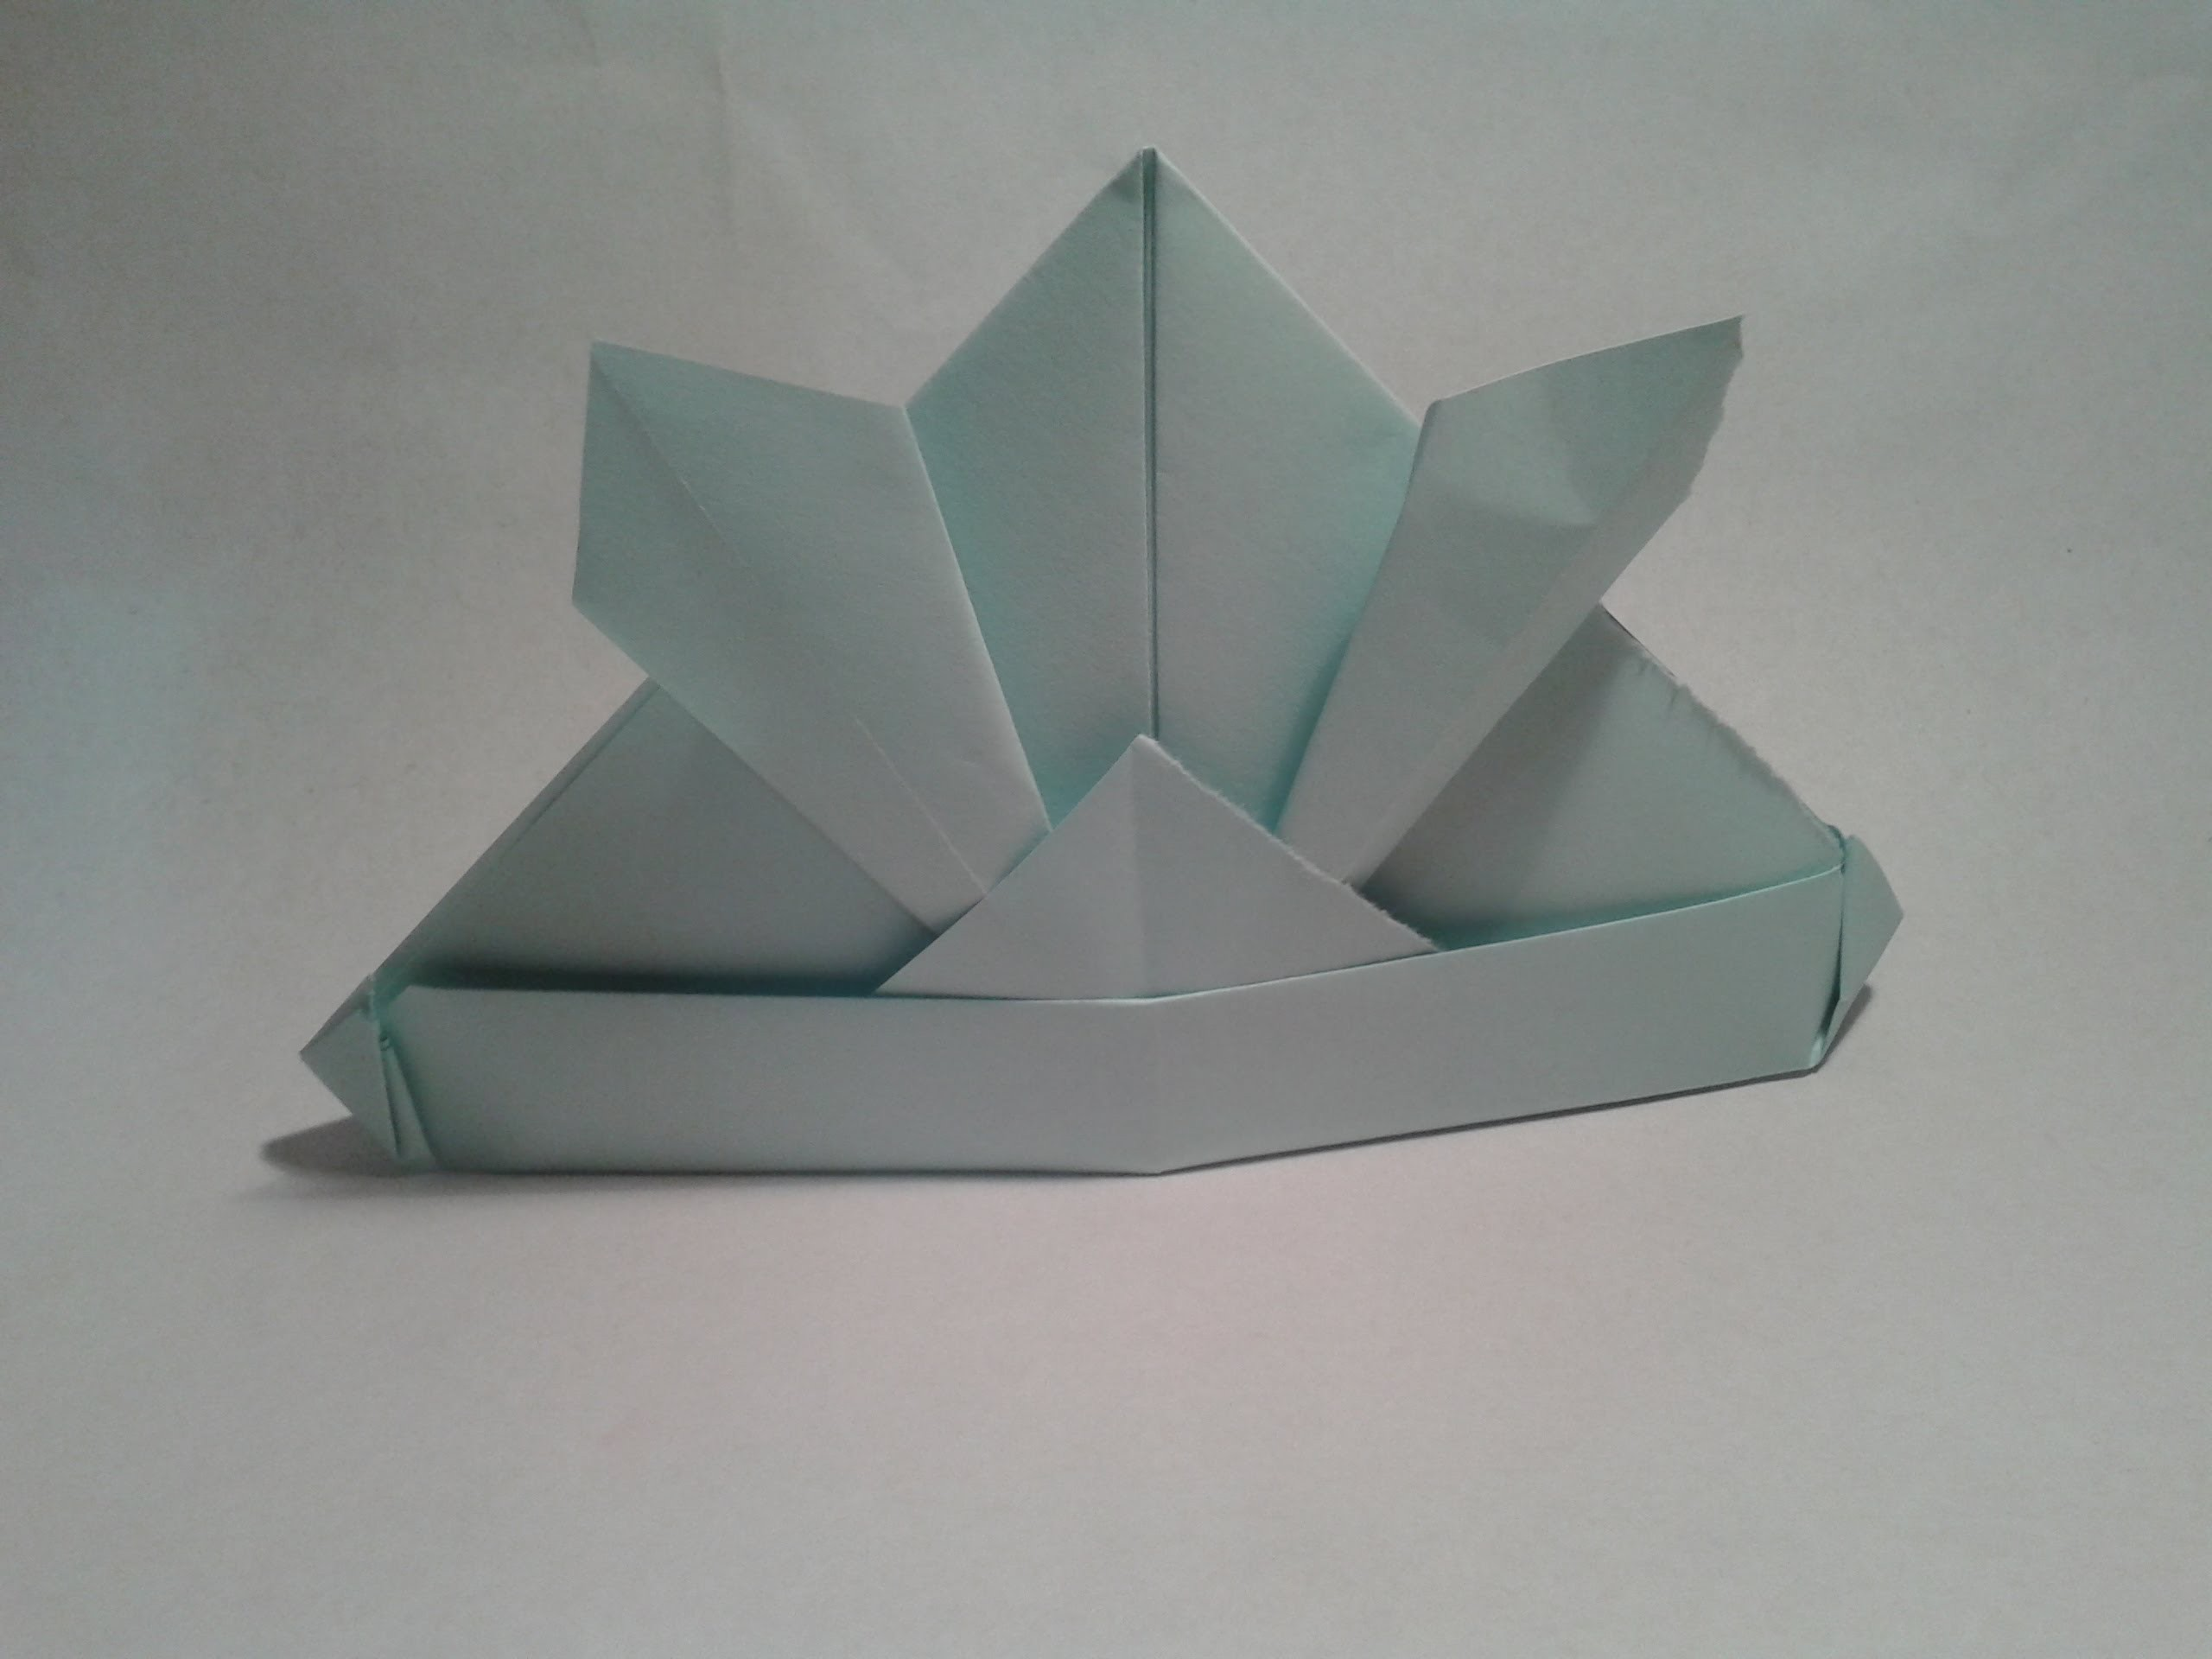 Origami - How to make an easy origami samurai hat (origami ... - photo#48